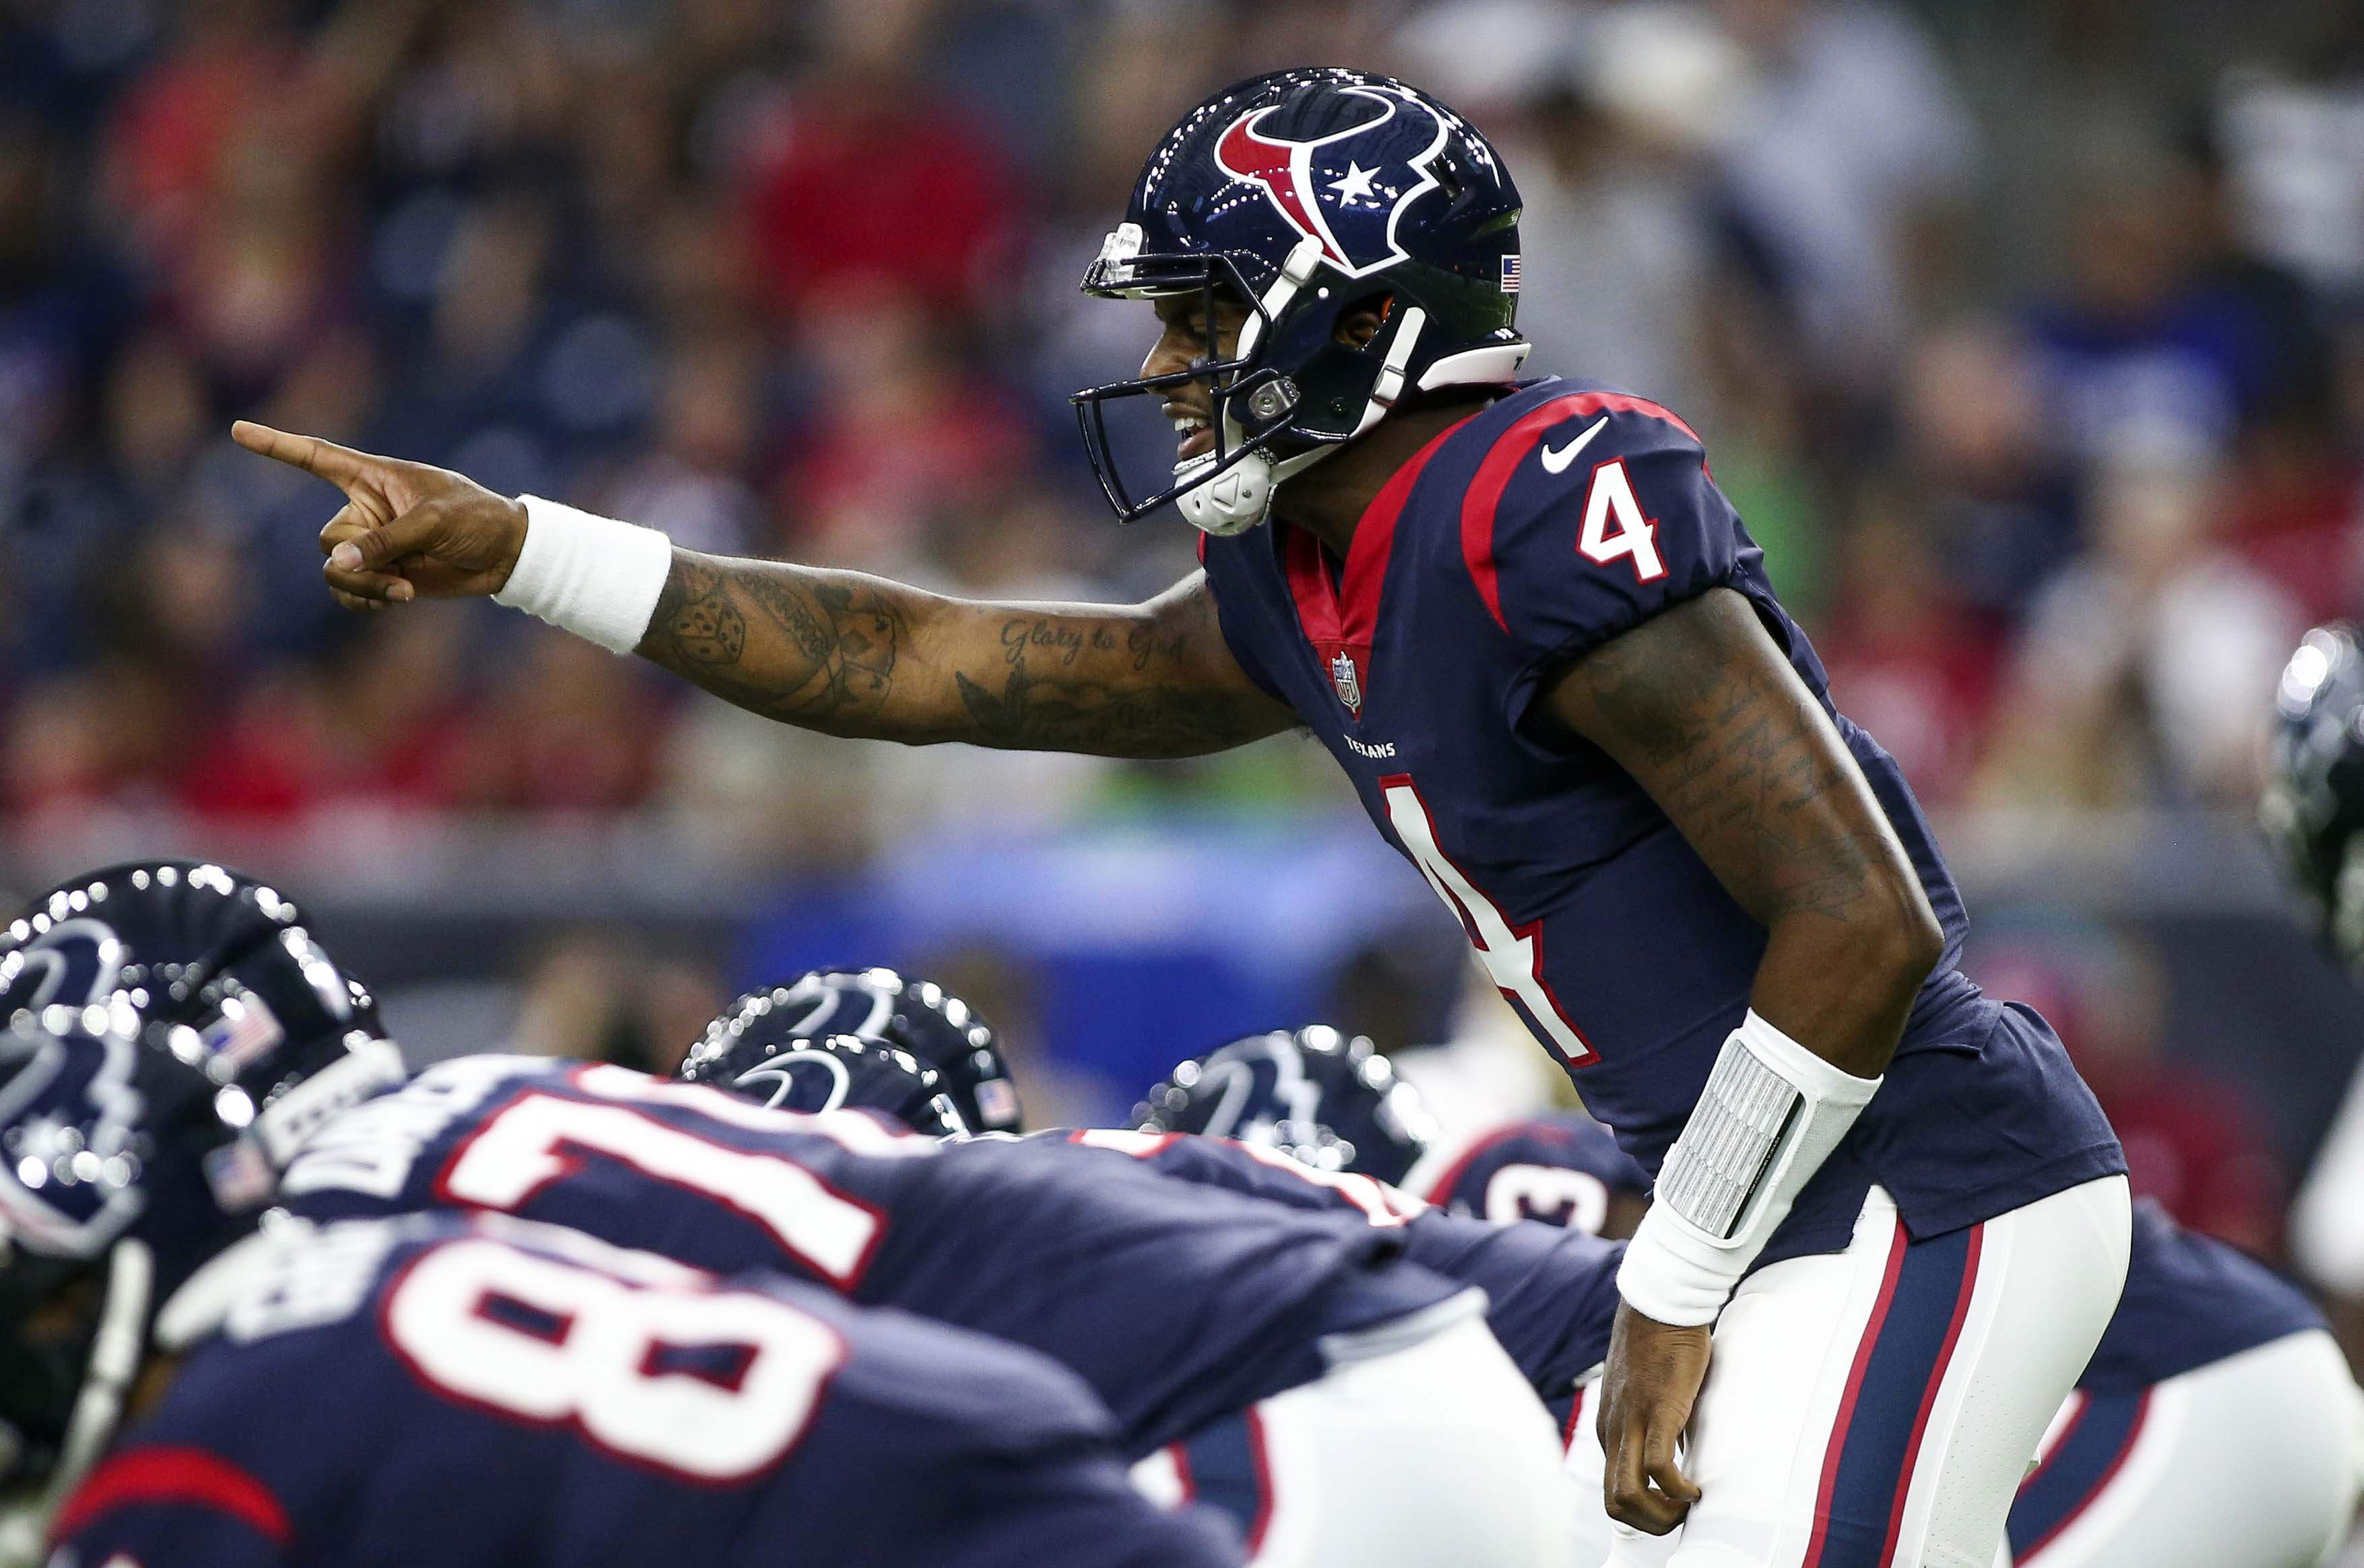 Aug 18, 2018; Houston, TX, USA; Houston Texans quarterback Deshaun Watson (4) callas a play at the line of scrimmage during the first quarter against the San Francisco 49ers at NRG Stadium. Mandatory Credit: Troy Taormina-USA TODAY Sports